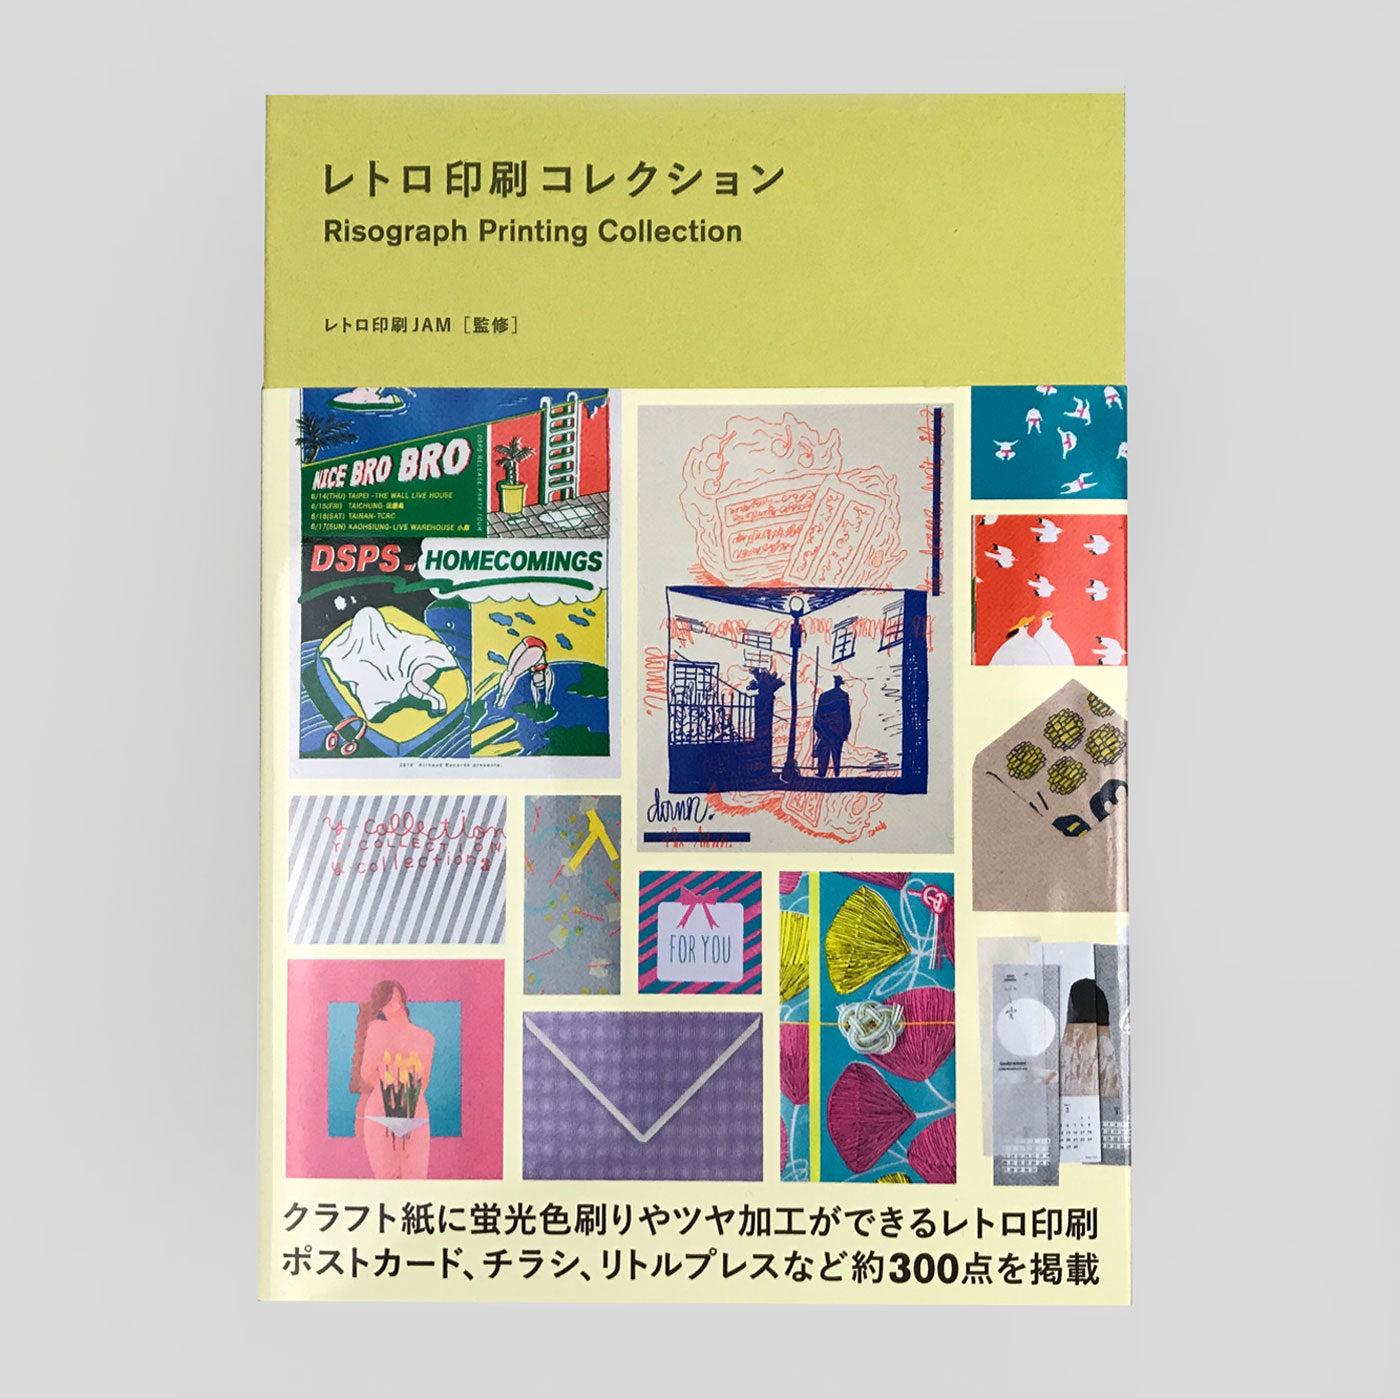 Risograph Printing Collection by Retro Printing JAM. - Colours May Vary